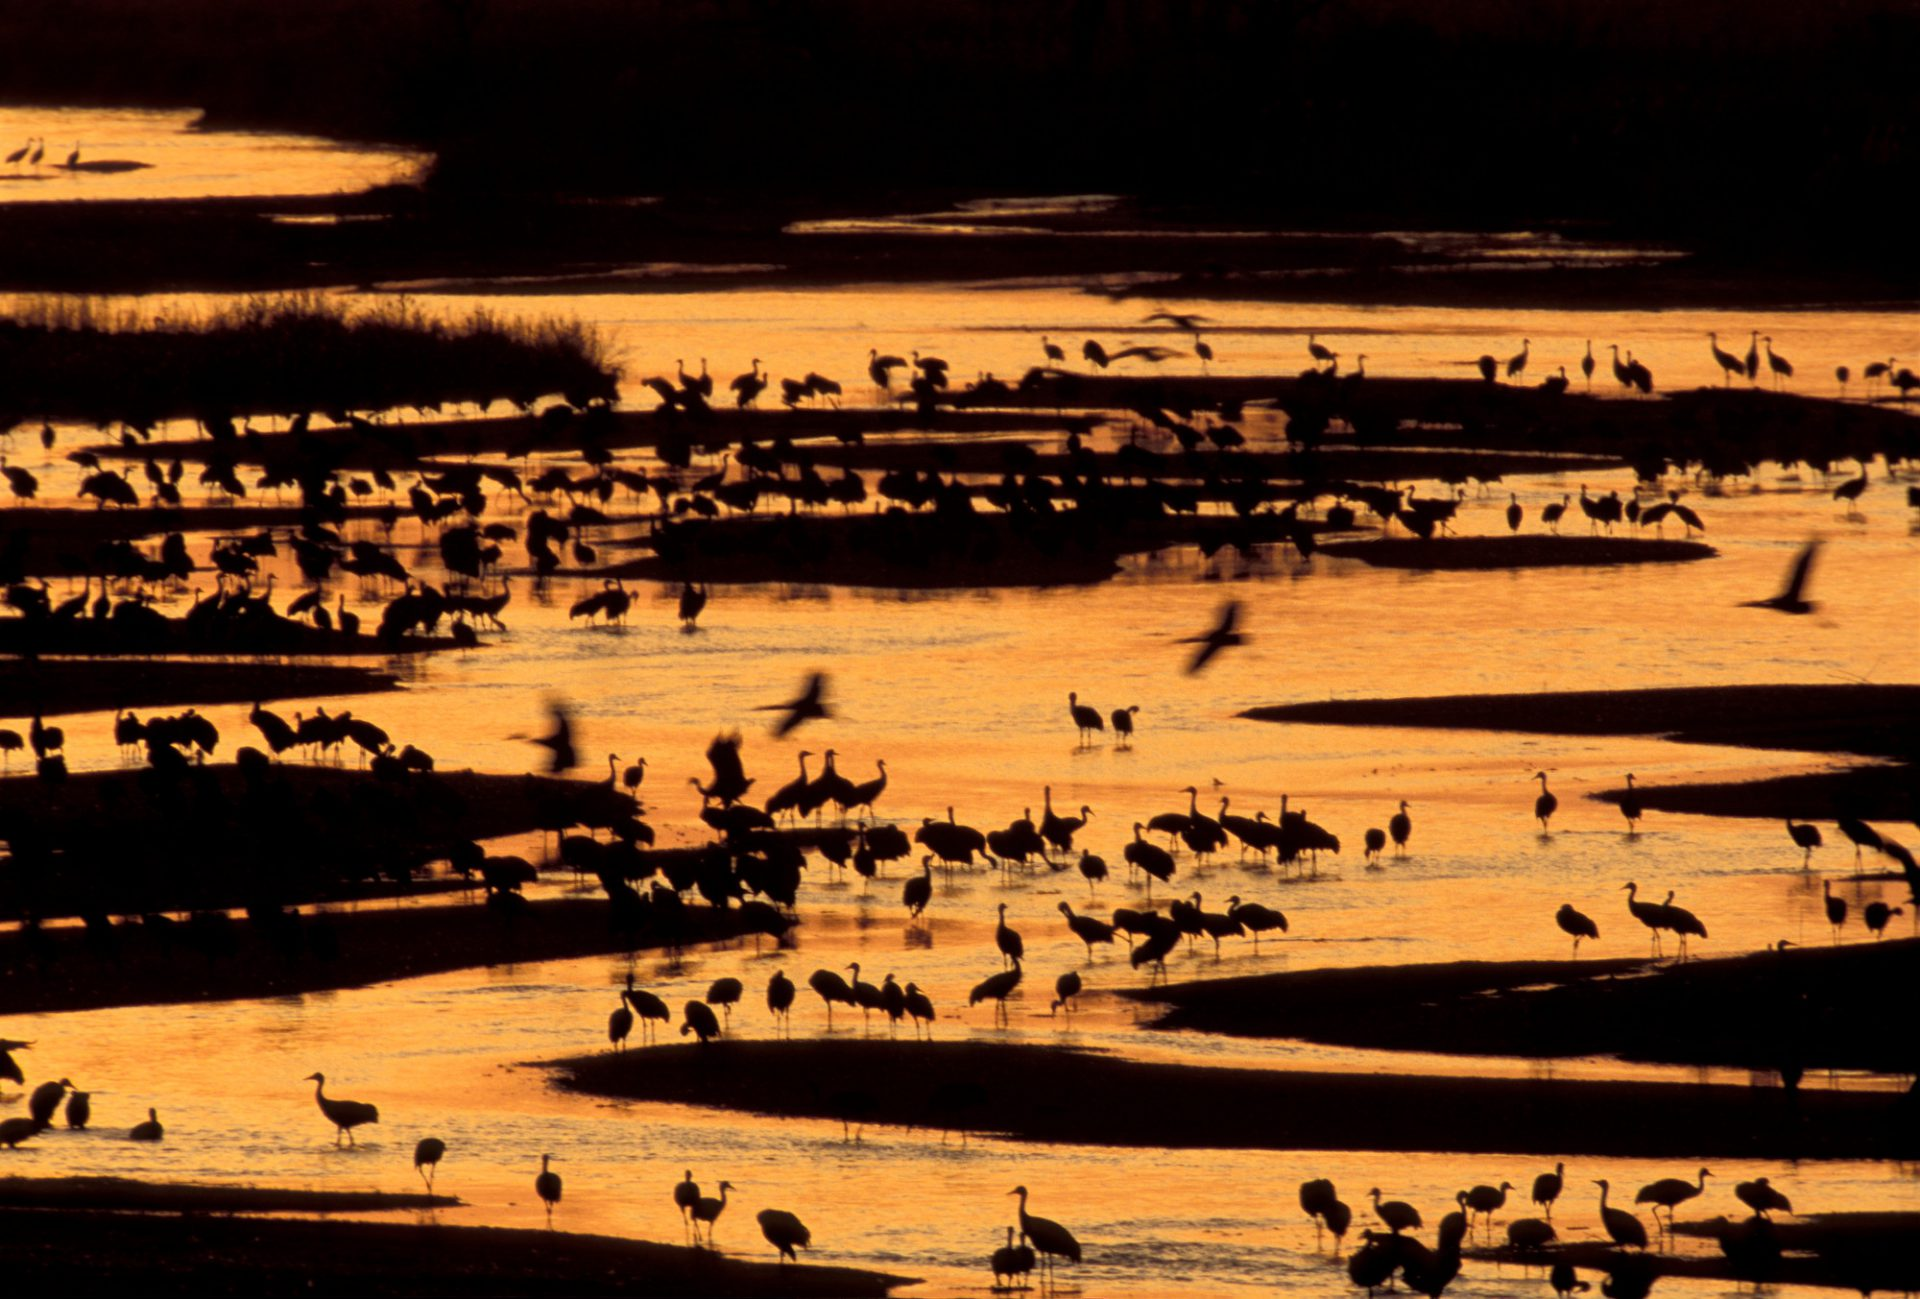 Photo: Sandhill cranes roosting during a stop over on their annual migration in the Platte River near Gibbon, NE